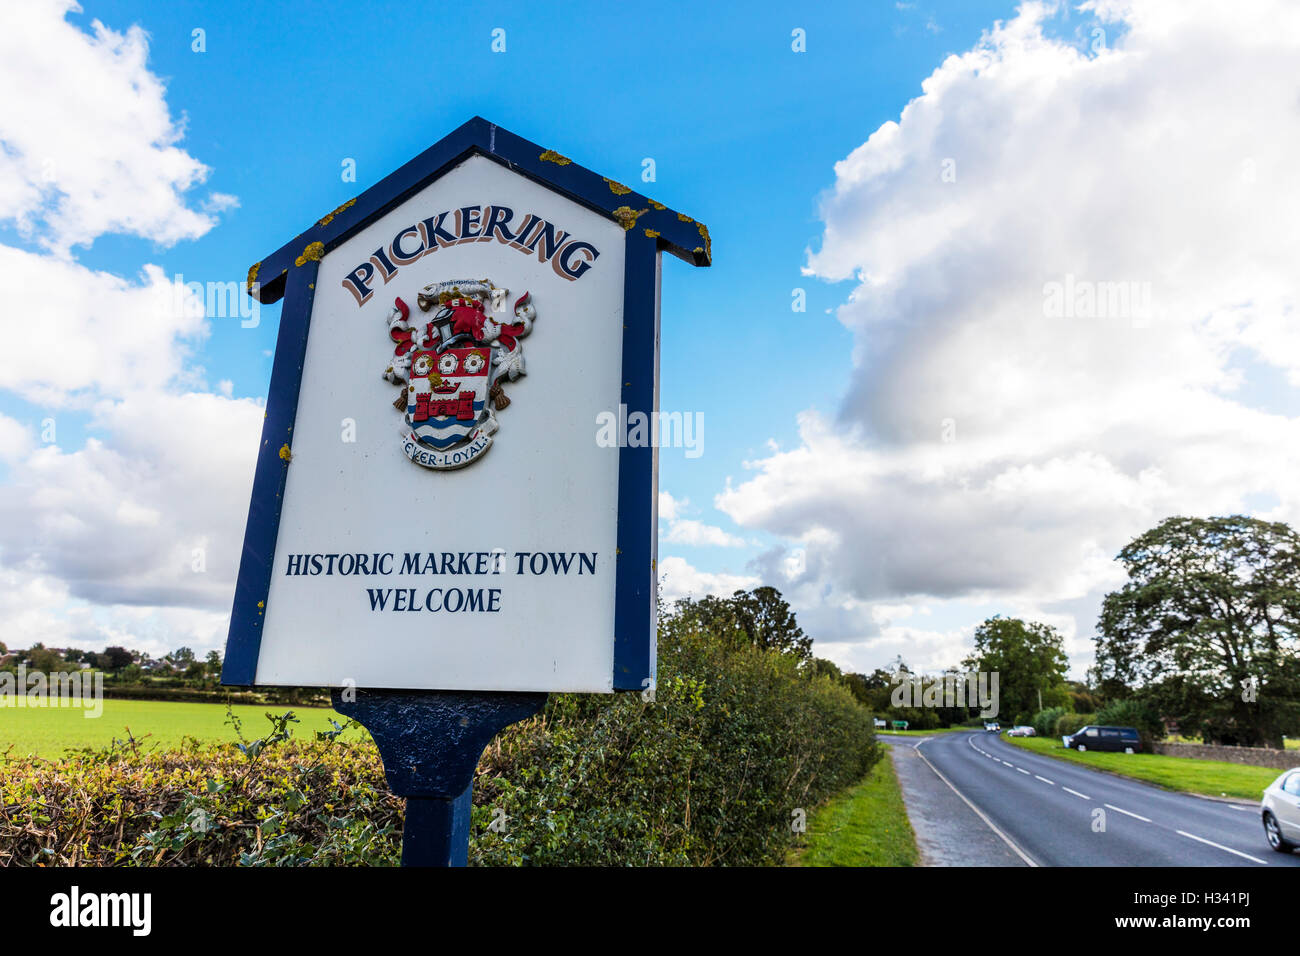 Pickering town sign Yorkshire town towns entrance signs welcome sign UK England GB - Stock Image